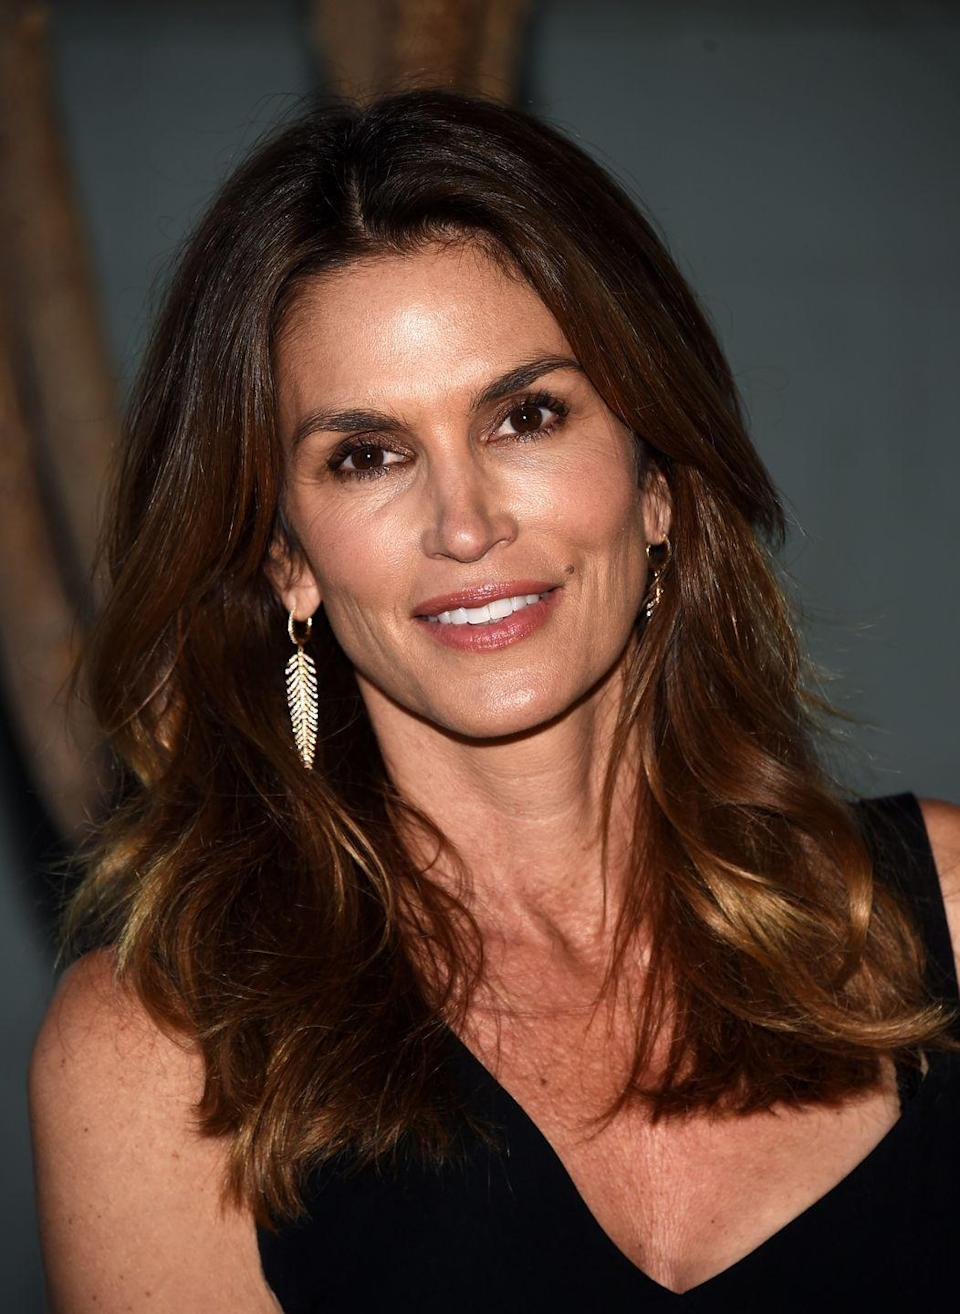 """<p>Supermodel Cindy Crawford admits to having shots of Botox in the past. """"I'm not going to lie to myself, past a certain age, creams work on the texture of your skin but, in order to restore elasticity, all I can really count on is vitamin injections, botox, and collagen,"""" she told <em><a href=""""https://www.instyle.co.uk/celebrity/news/cindy-crawford-talks-openly-about-plastic-surgery#vIzVcLq0BwLxyH1B.99"""" rel=""""nofollow noopener"""" target=""""_blank"""" data-ylk=""""slk:InStyle Magazine"""" class=""""link rapid-noclick-resp"""">InStyle Magazine</a></em>. """"I have a very simple, healthy life, which works miracles. I drink a lot of water, watch what I eat, and exercise… but I owe the quality of my skin to my cosmetic surgeon.""""</p>"""